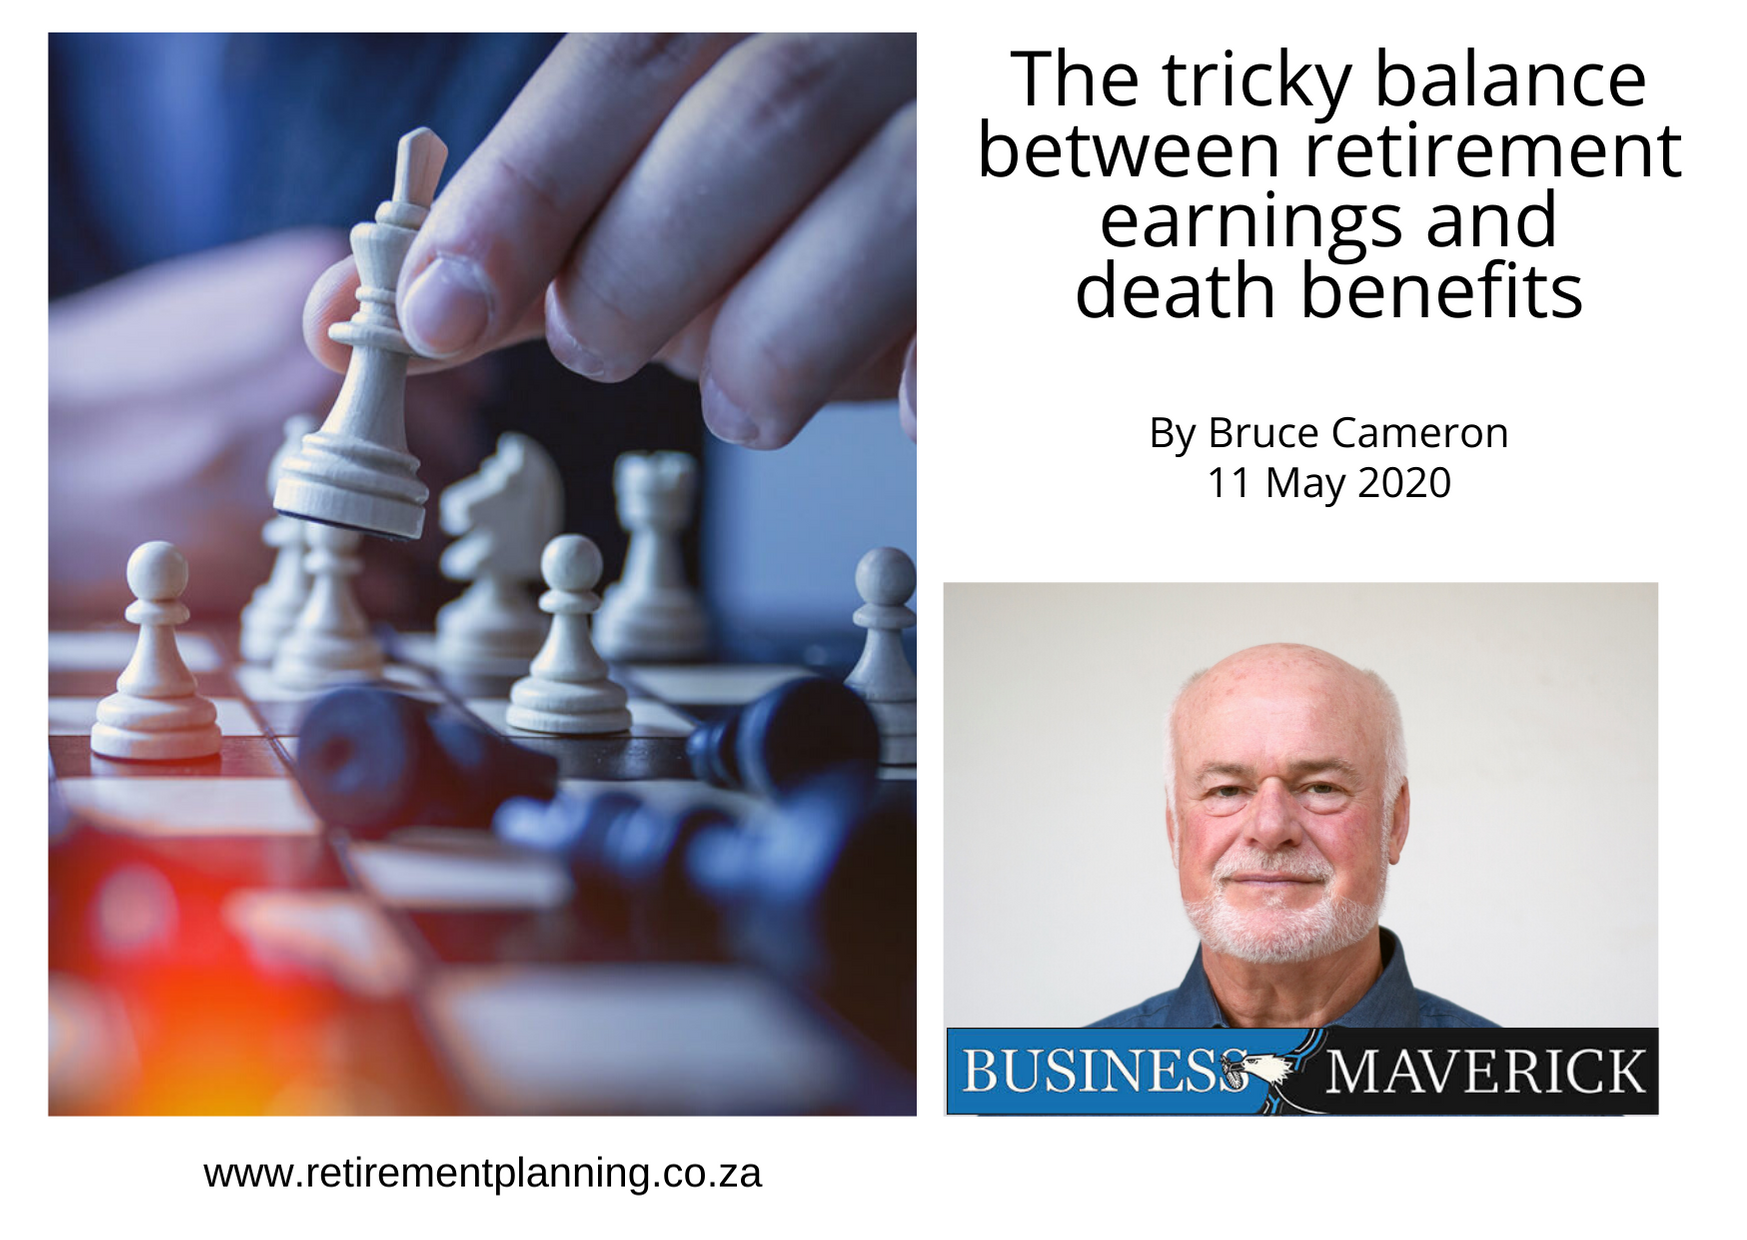 Bruce Cameron The tricky balance between retirement earnings and death benefits 11052020